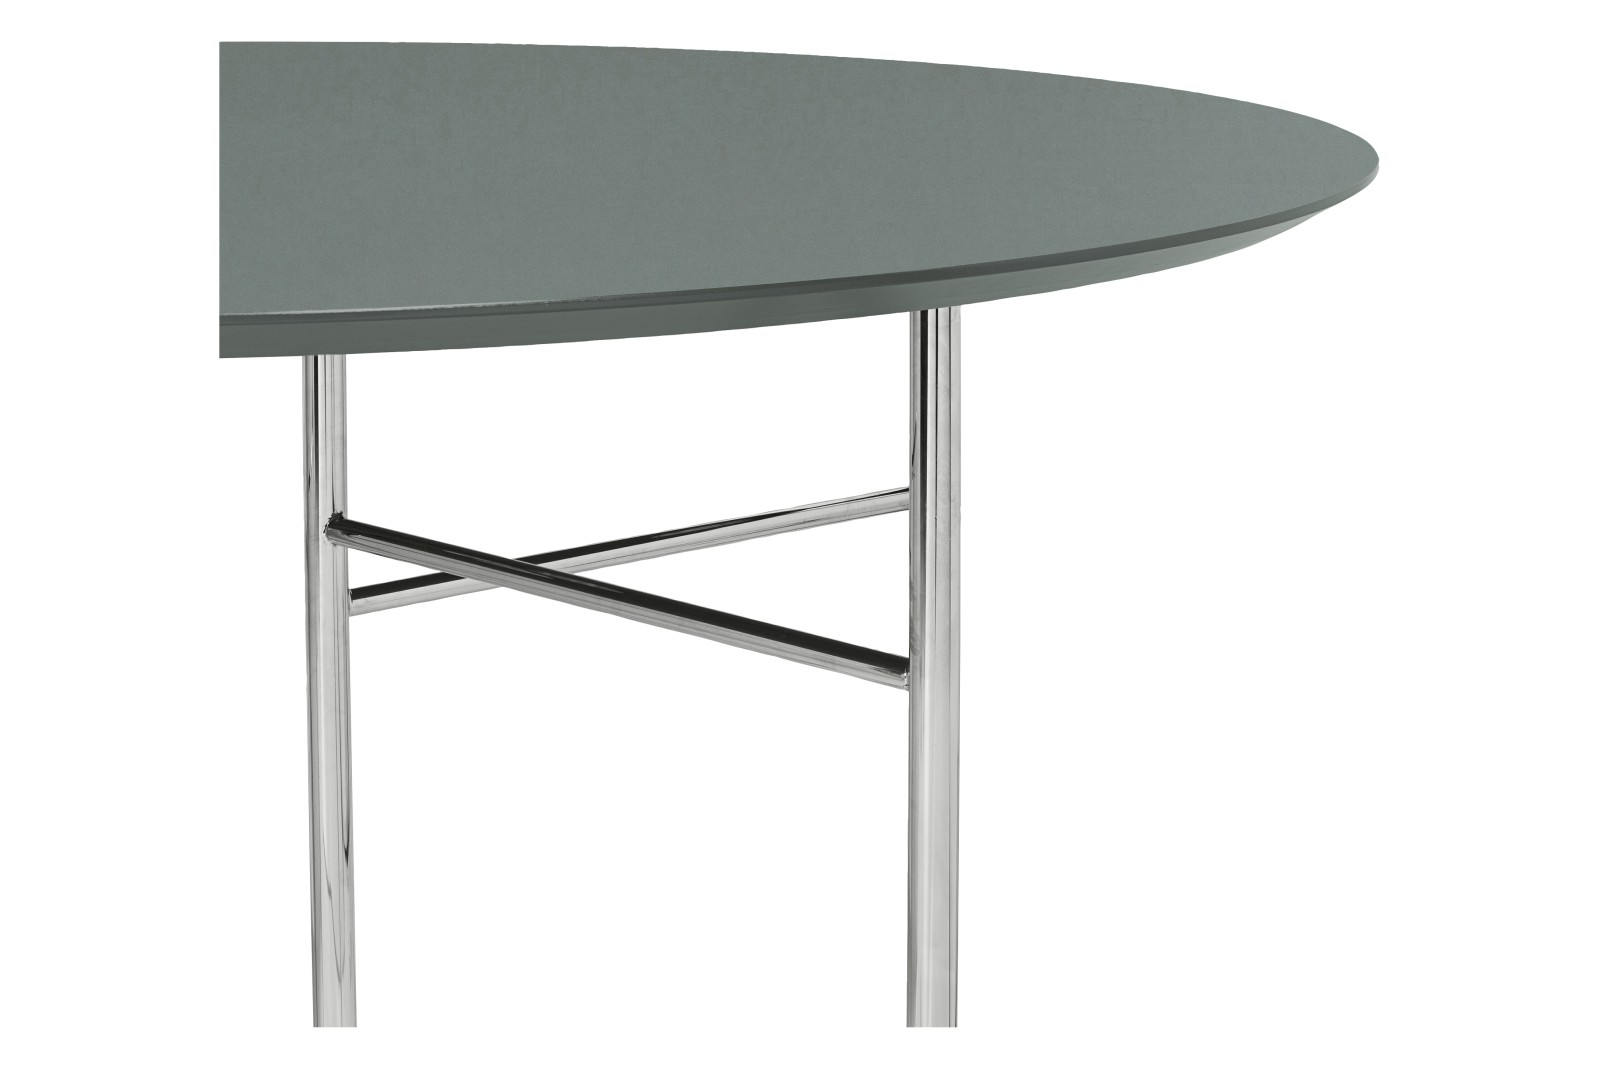 Mingle Round Table Top Green, MDF core and Forbo Linoleum